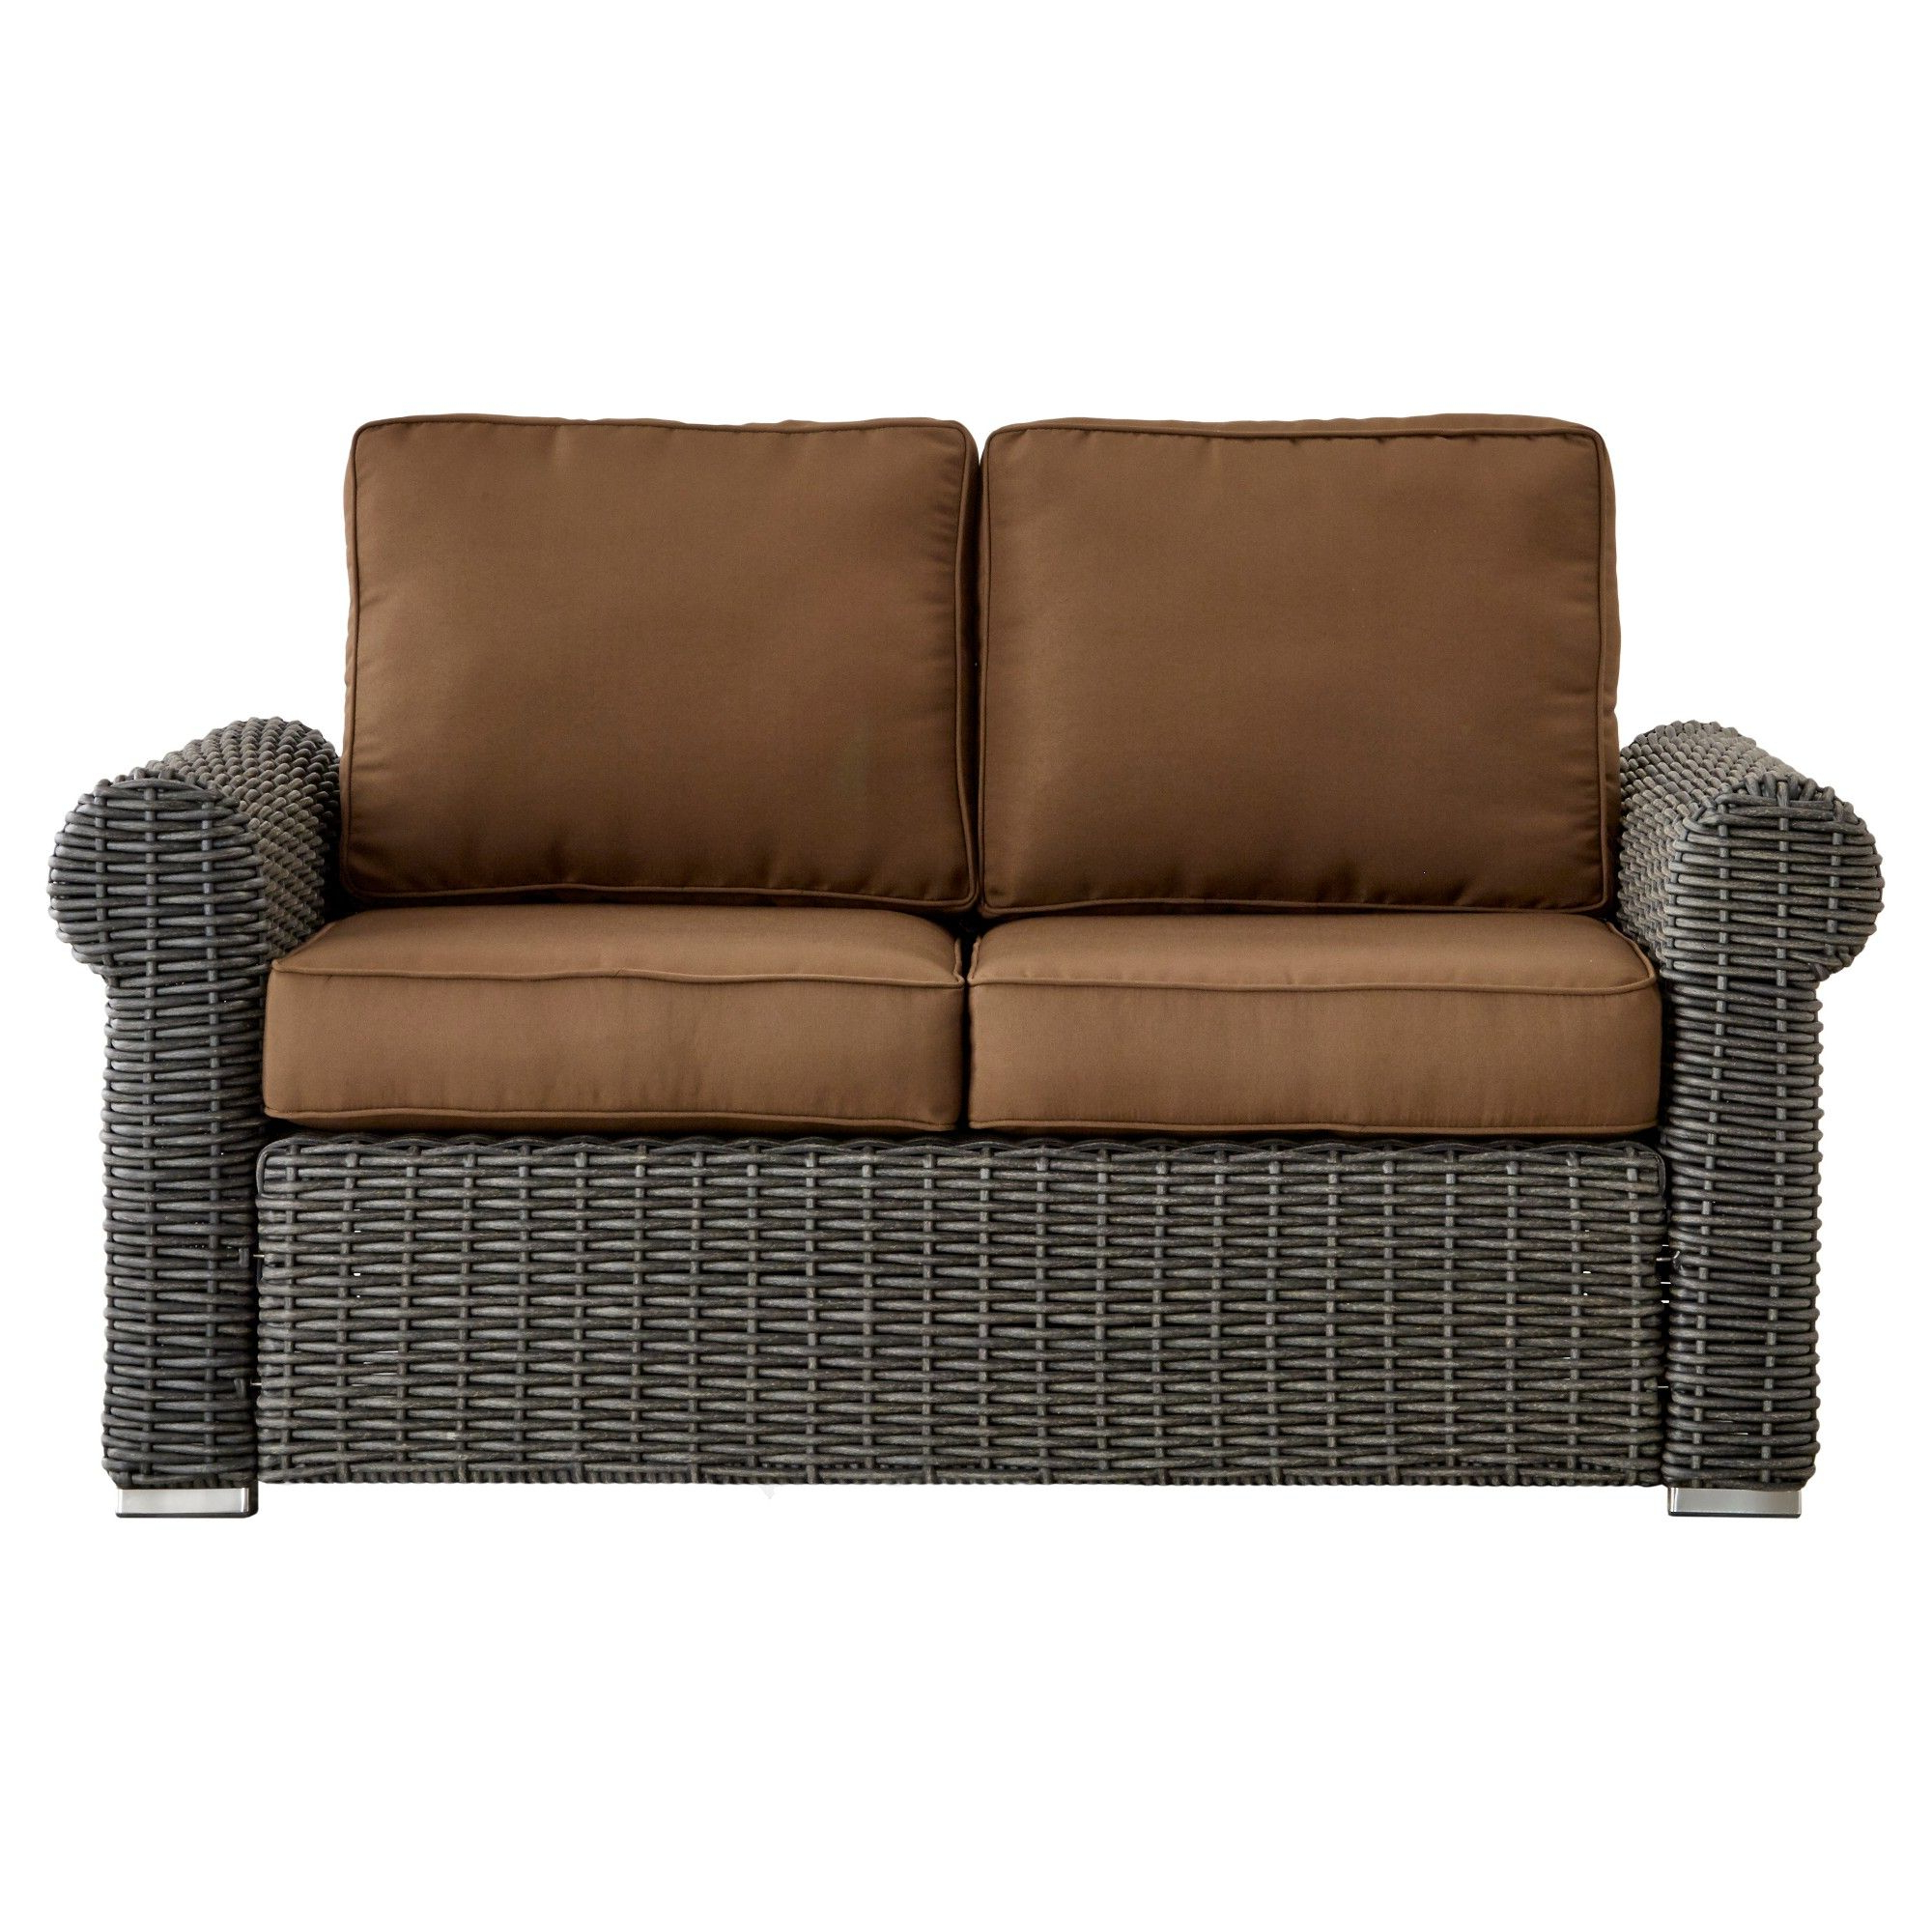 Well Liked Lawson Wicker Loveseats With Cushions For Riviera Pointe Wicker Patio Round Arm Loveseat With Cushions (Gallery 12 of 25)